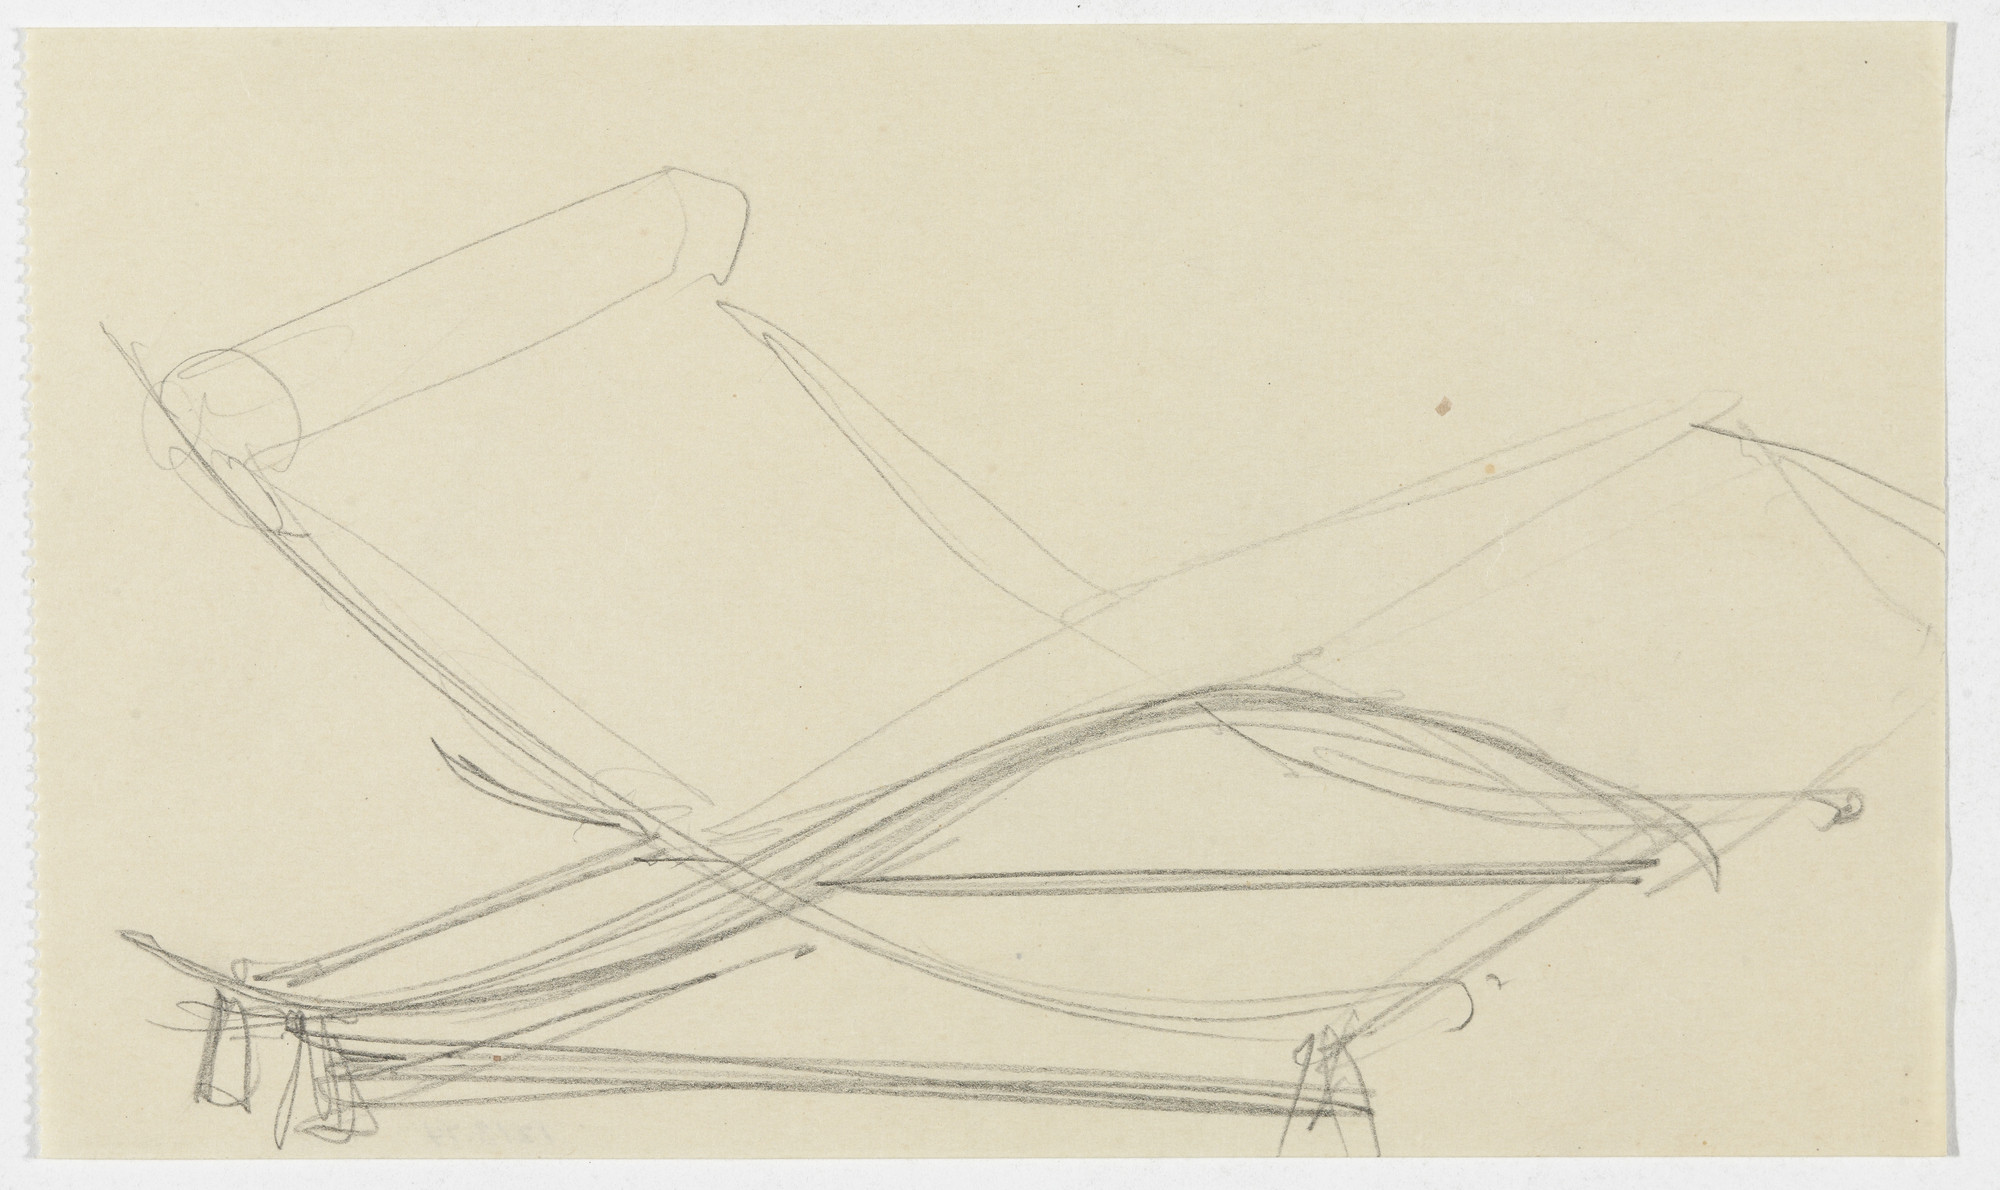 Ludwig Mies van der Rohe. Reclining Chair without Arms (Perspective sketch). 1934